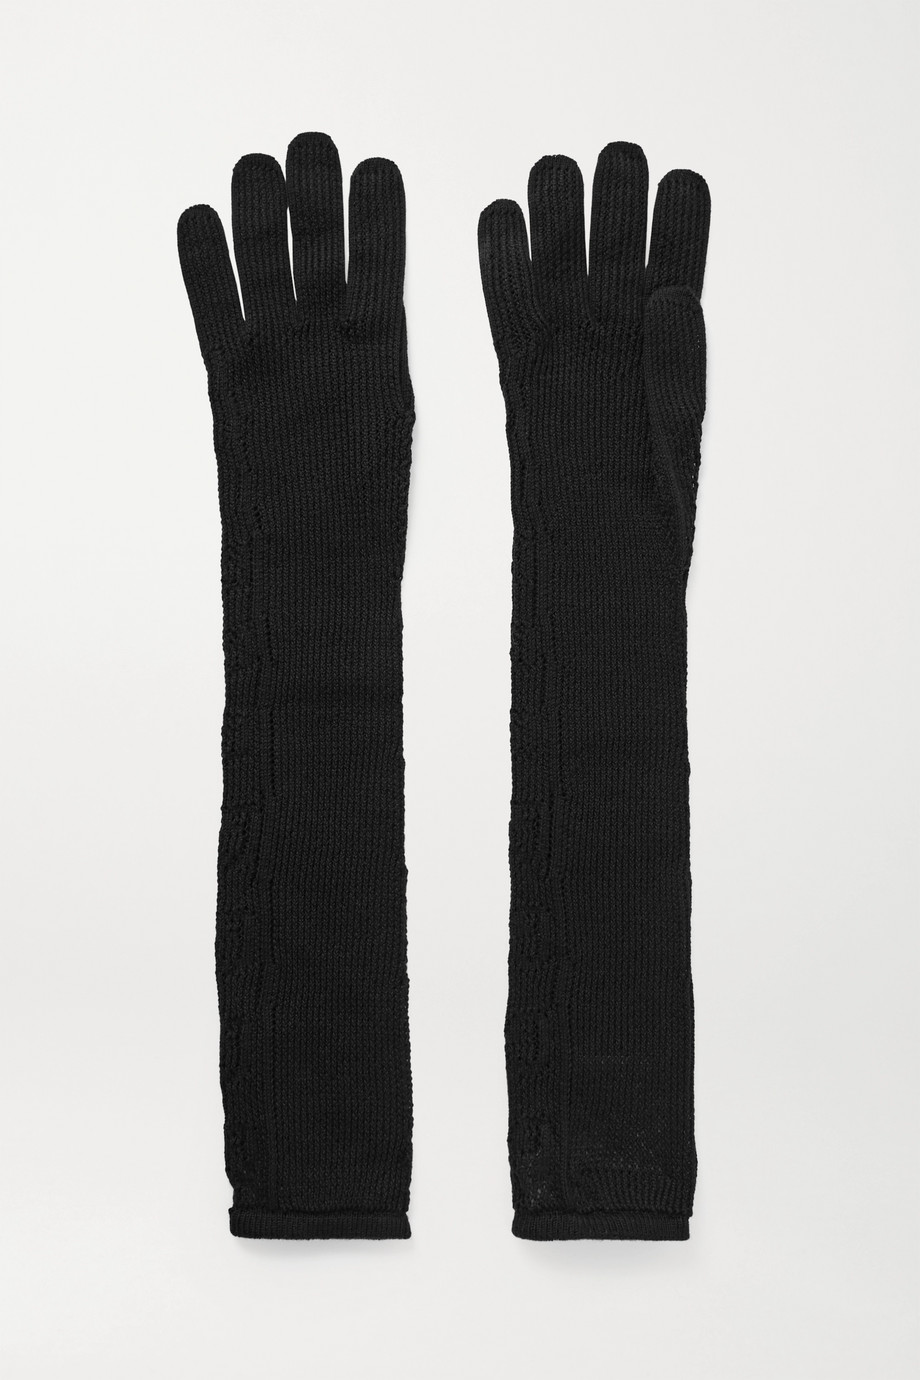 GUCCI Pointelle-knit cotton-blend gloves